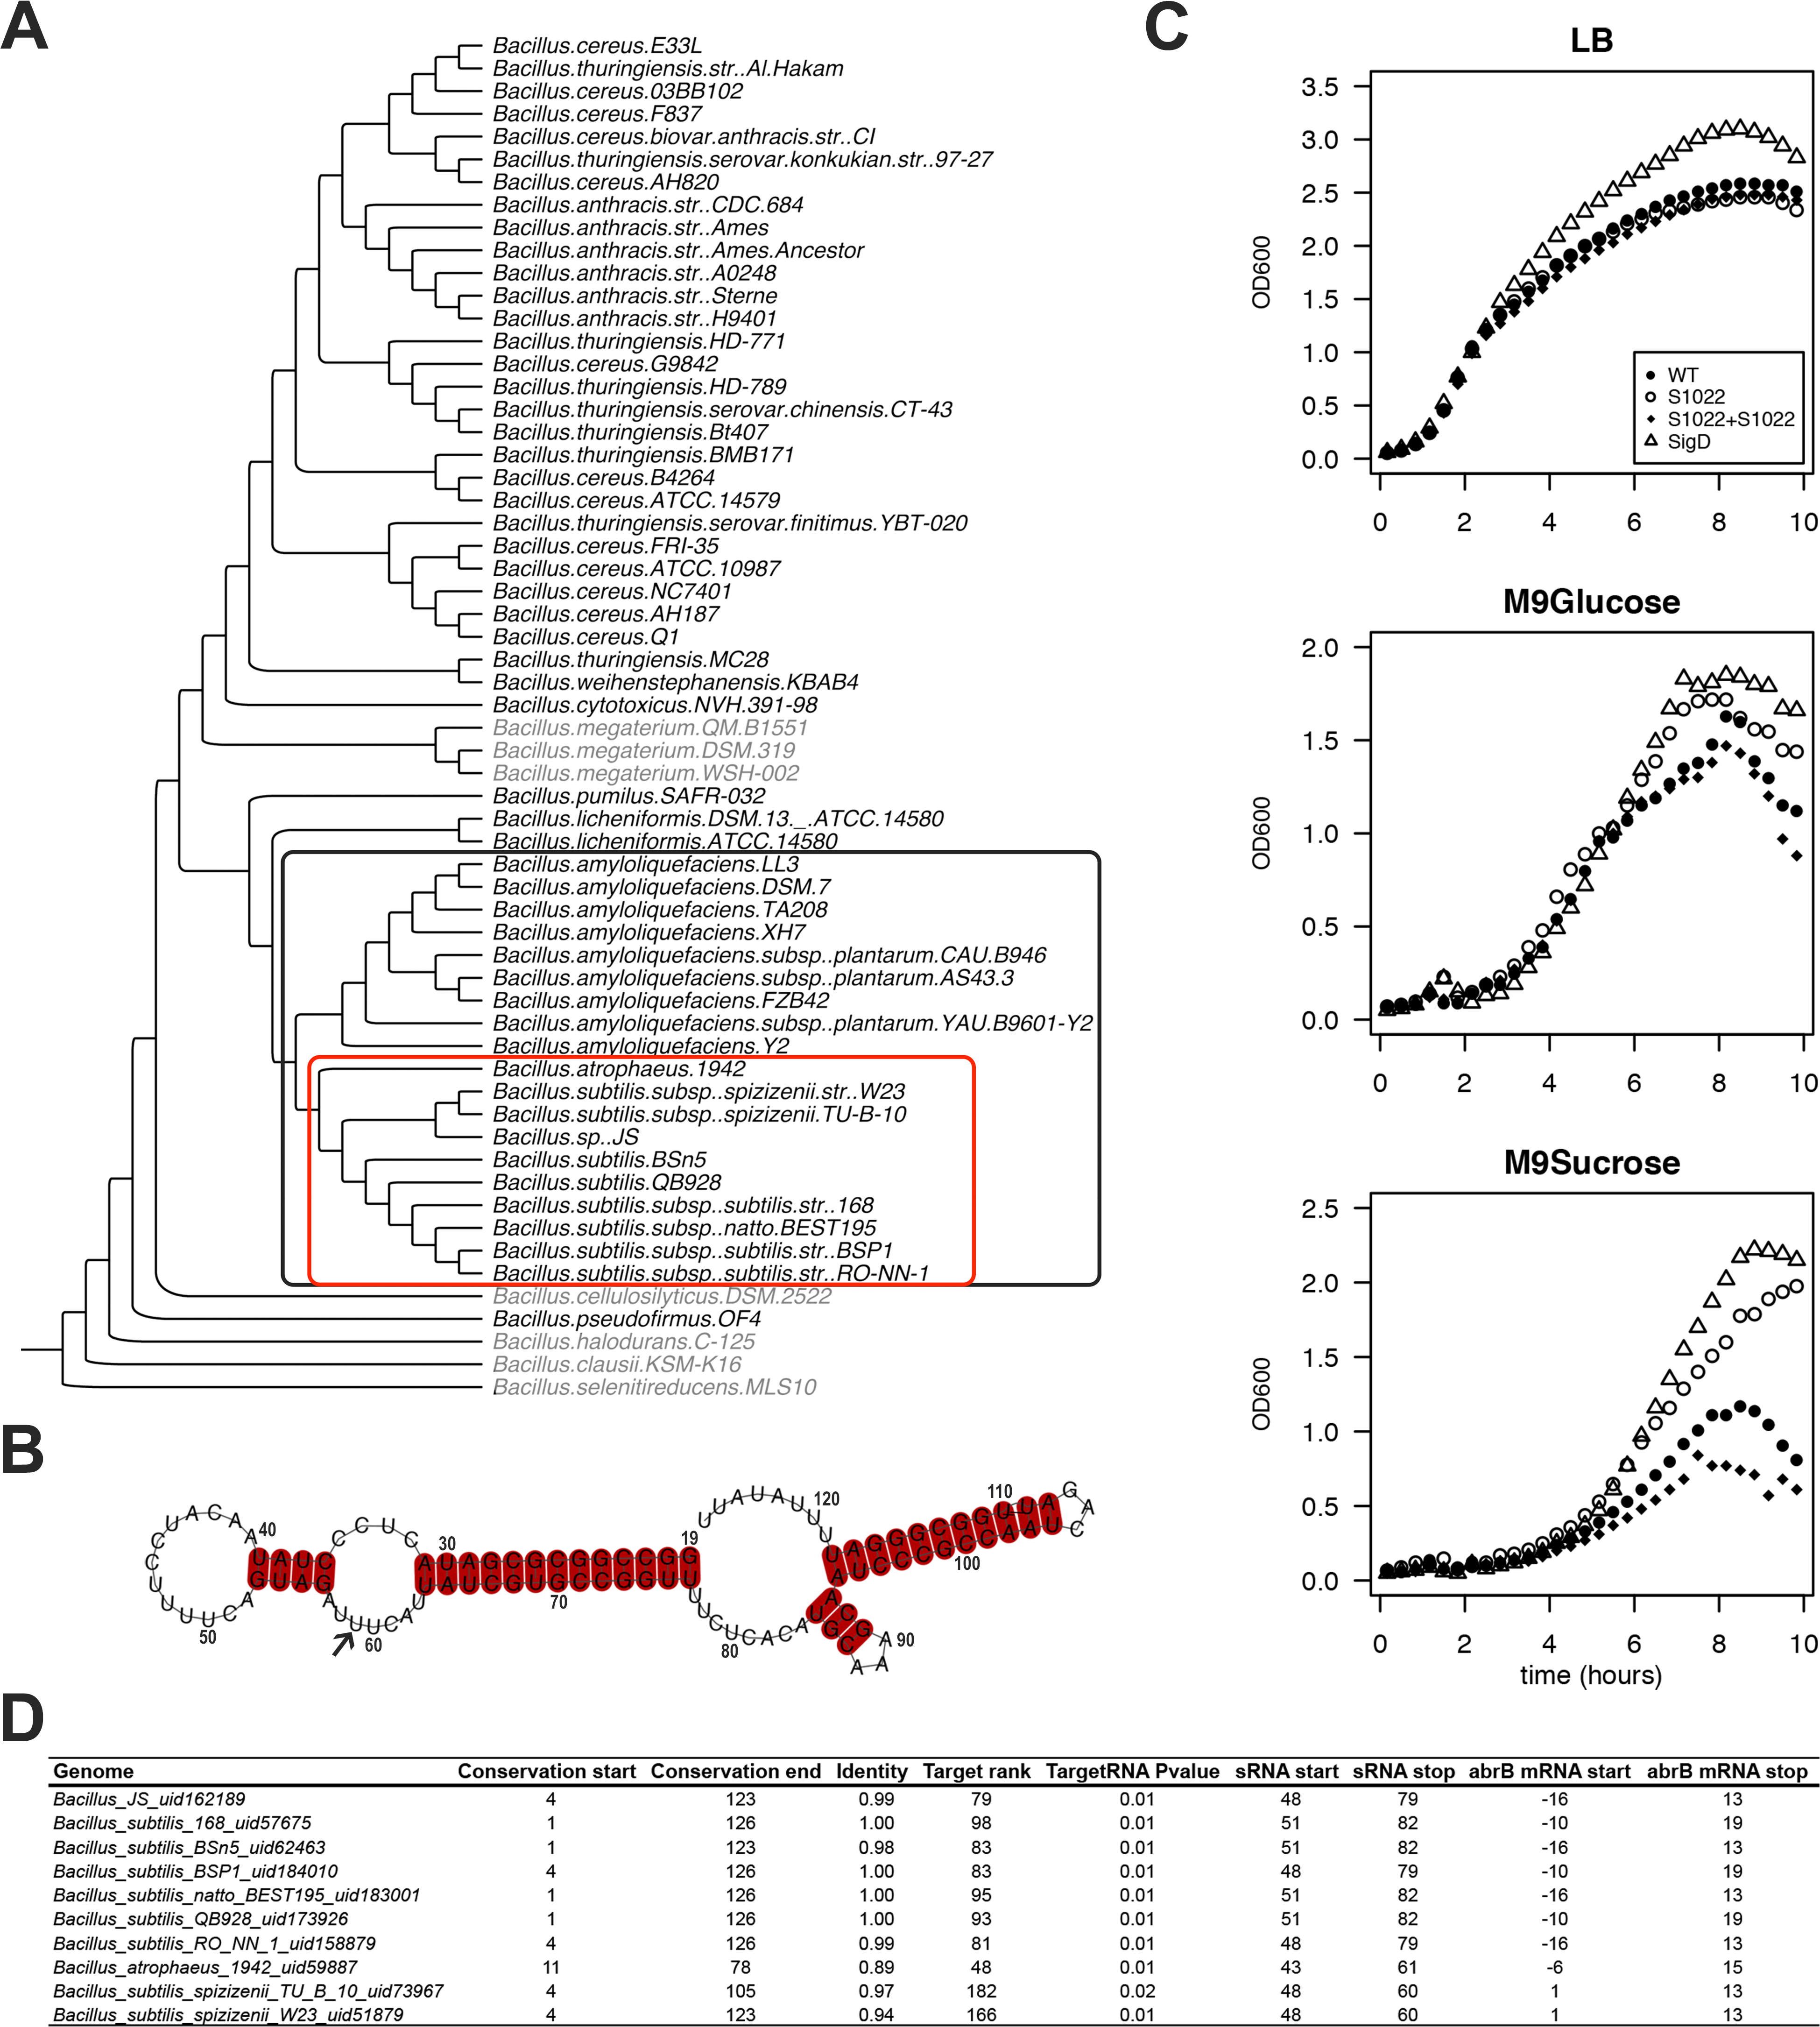 The RnaC/S1022 growth phenotype is linked to the evolutionary target prediction of abrB.